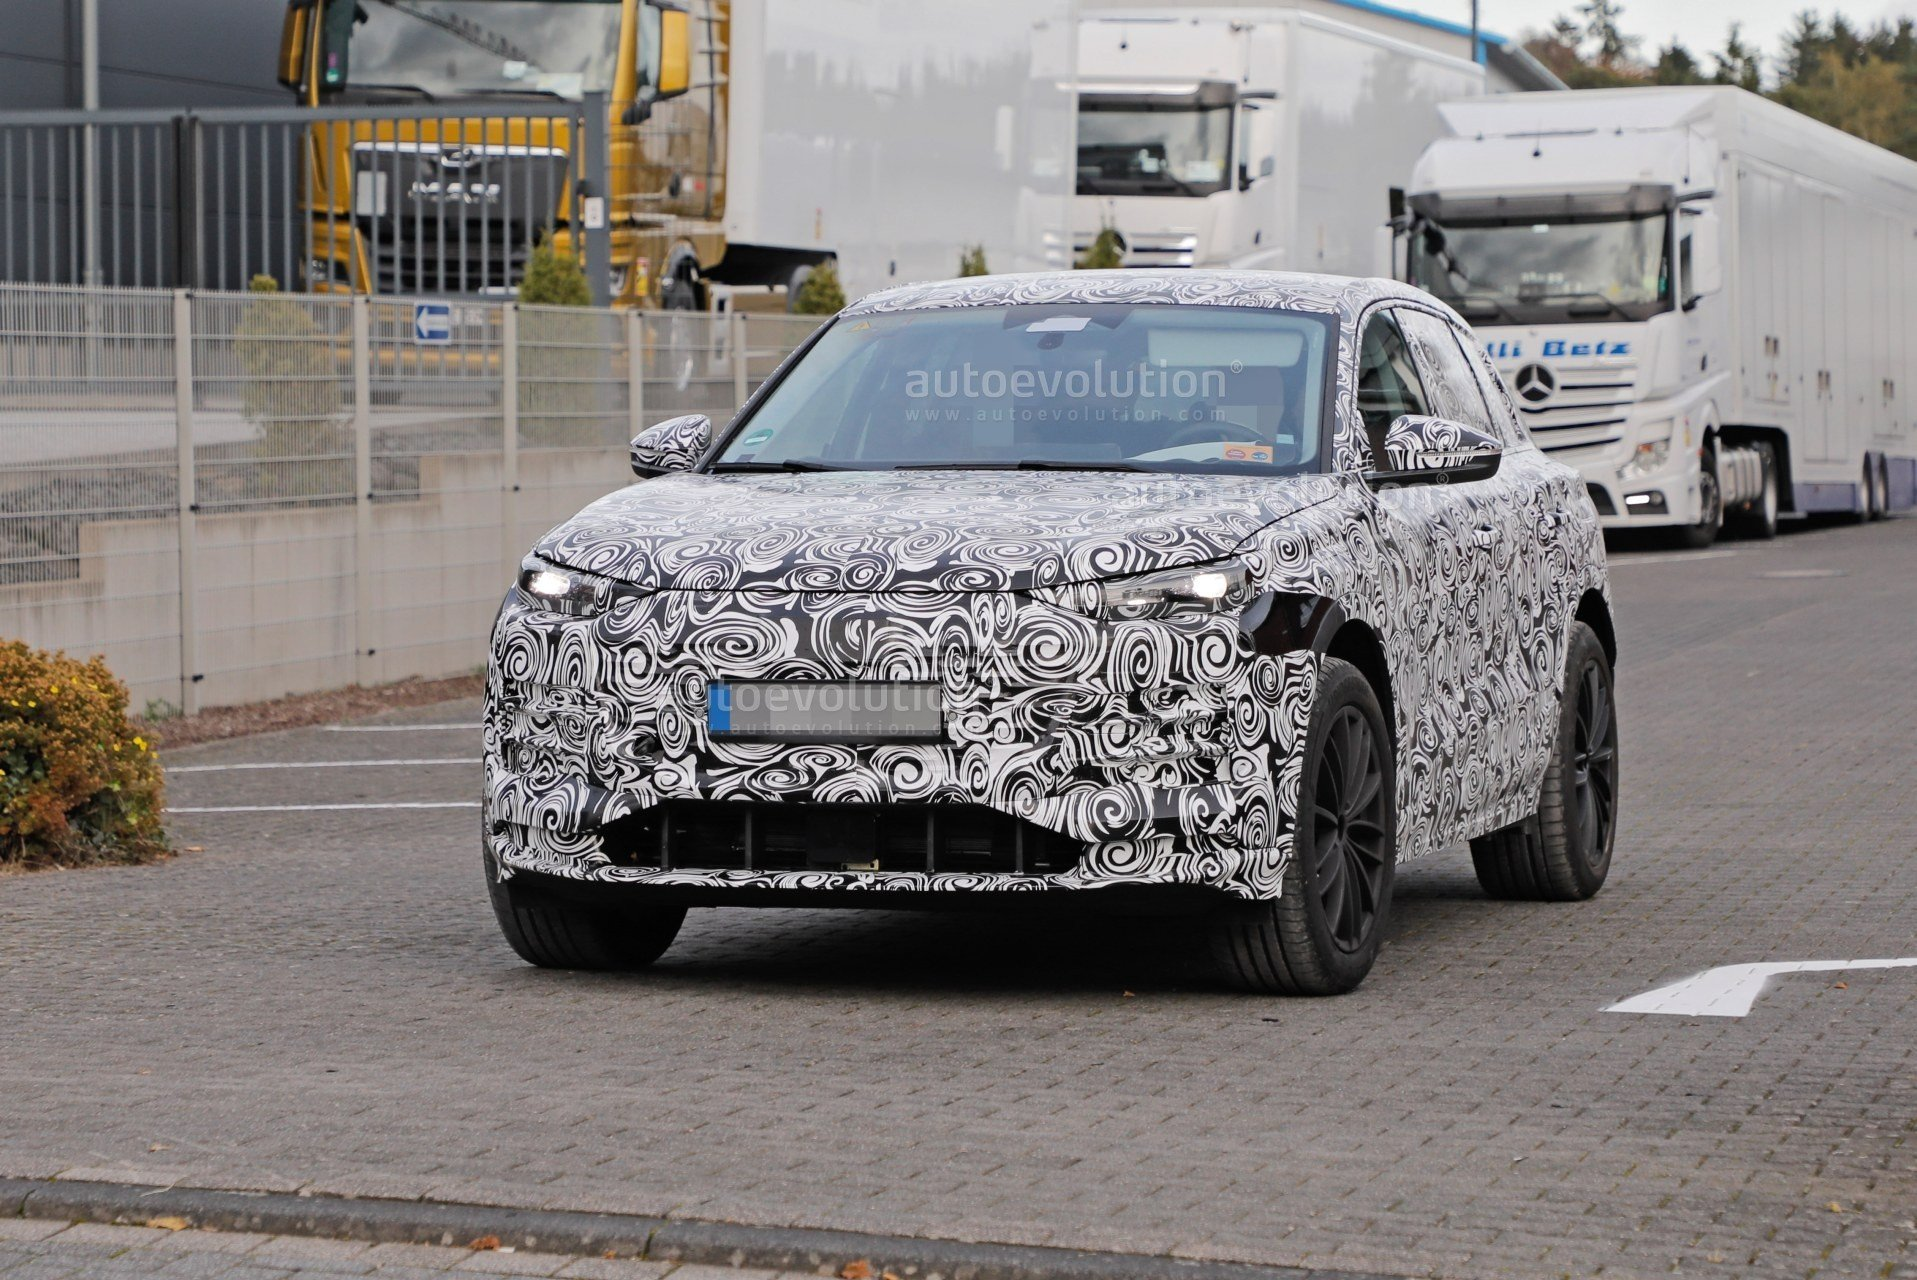 2023-audi-q6-e-tron-prototype-spied-wearing-full-camouflage-is-fully-electric_3.jpg